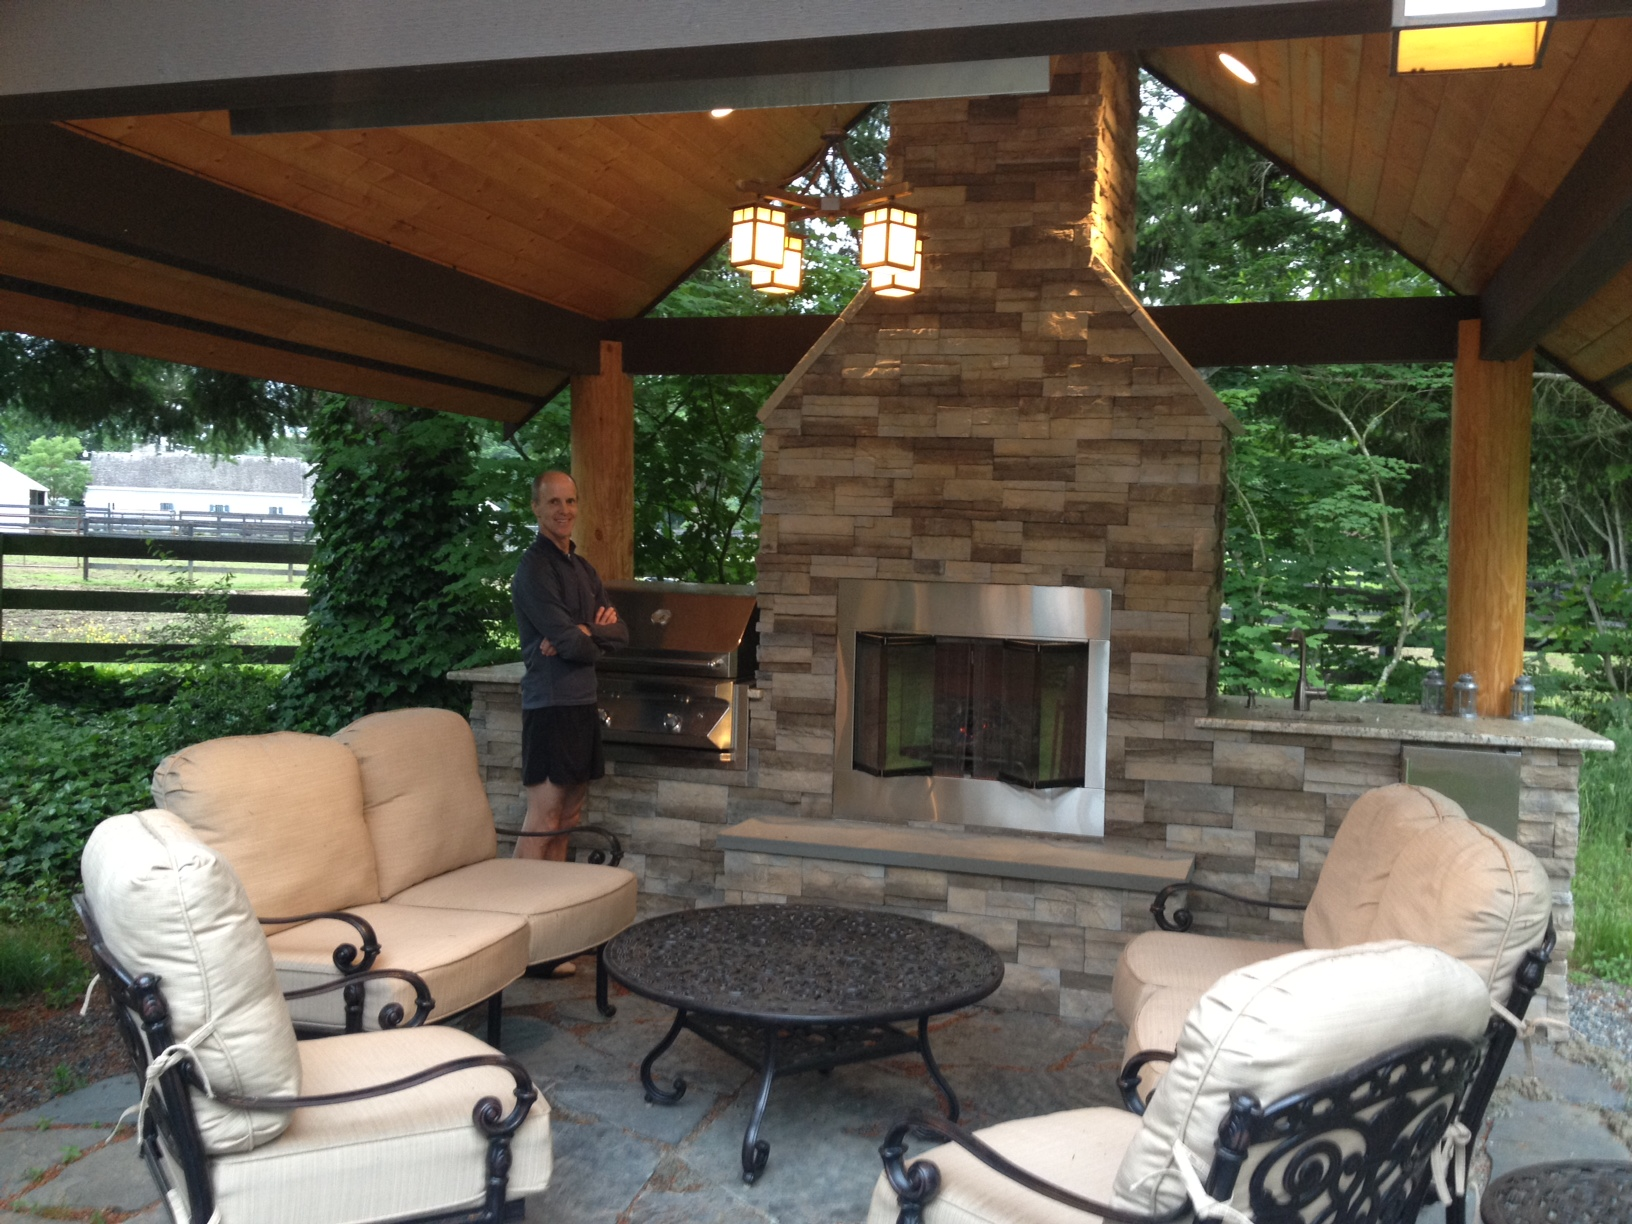 Outdoor Rooms...Perfect in the Northwest - Julie Billett on Outdoor Living Spaces Nw id=15674